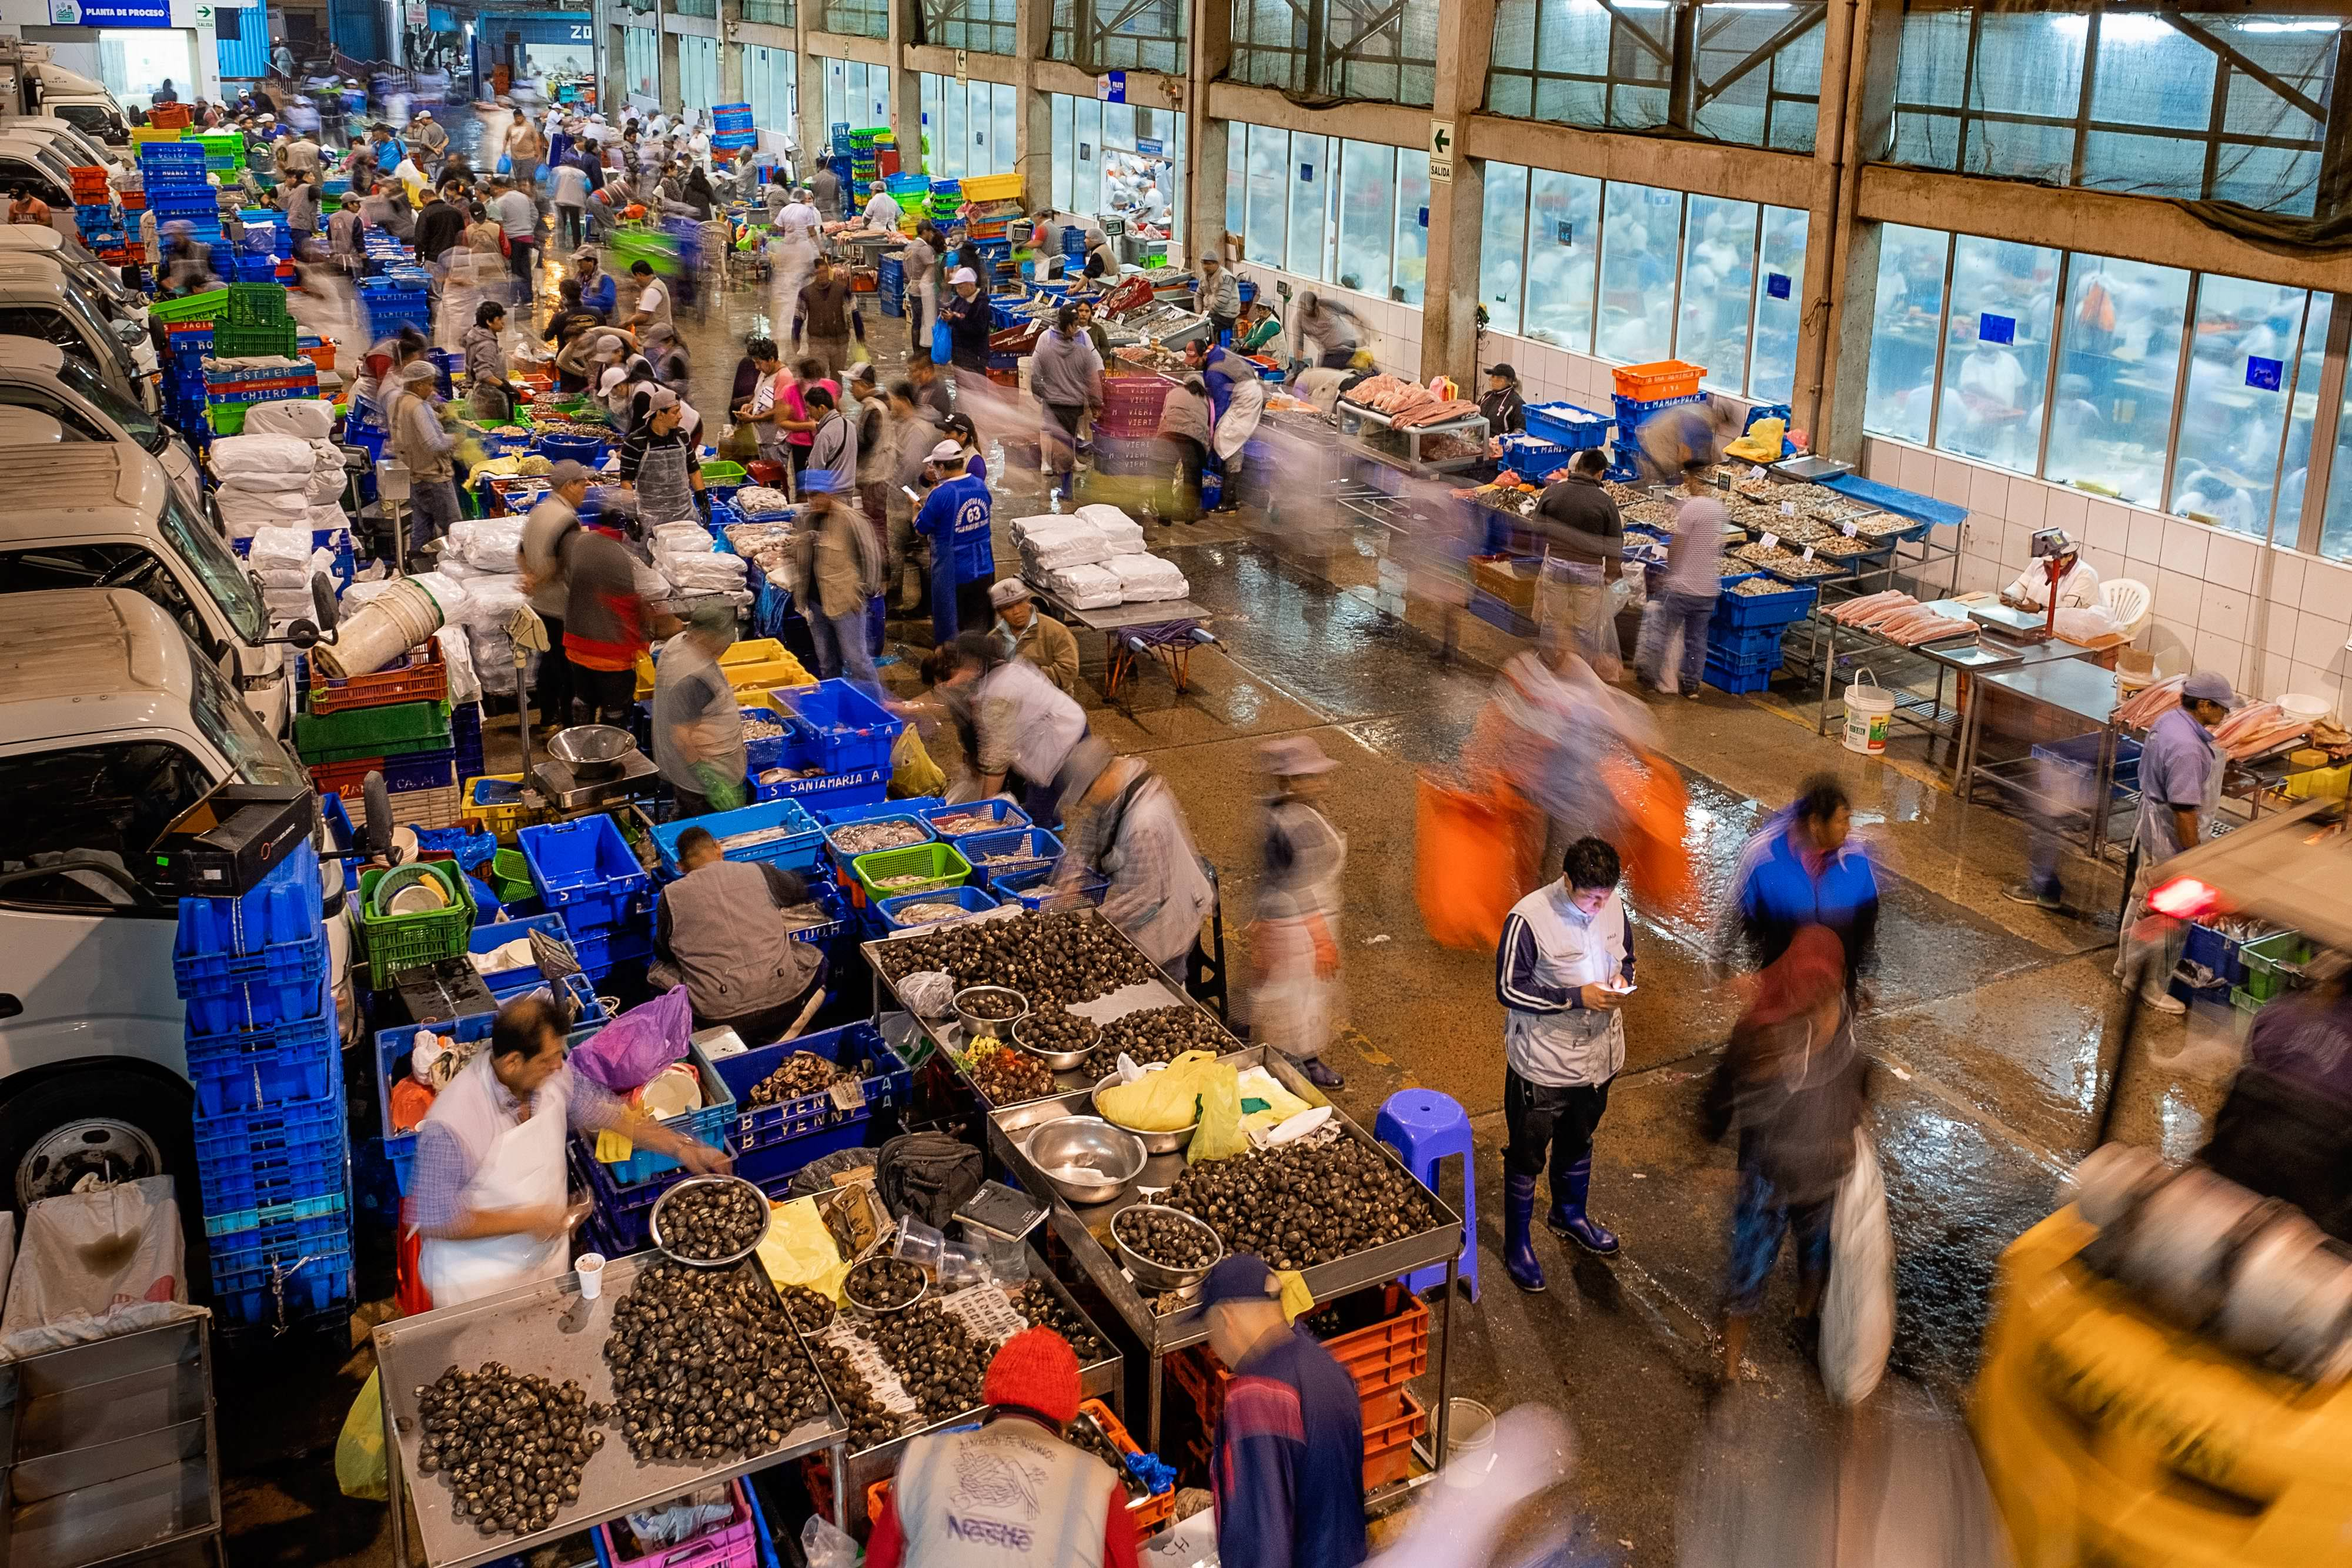 This is an example of a larger fish market in Lima, Peru.